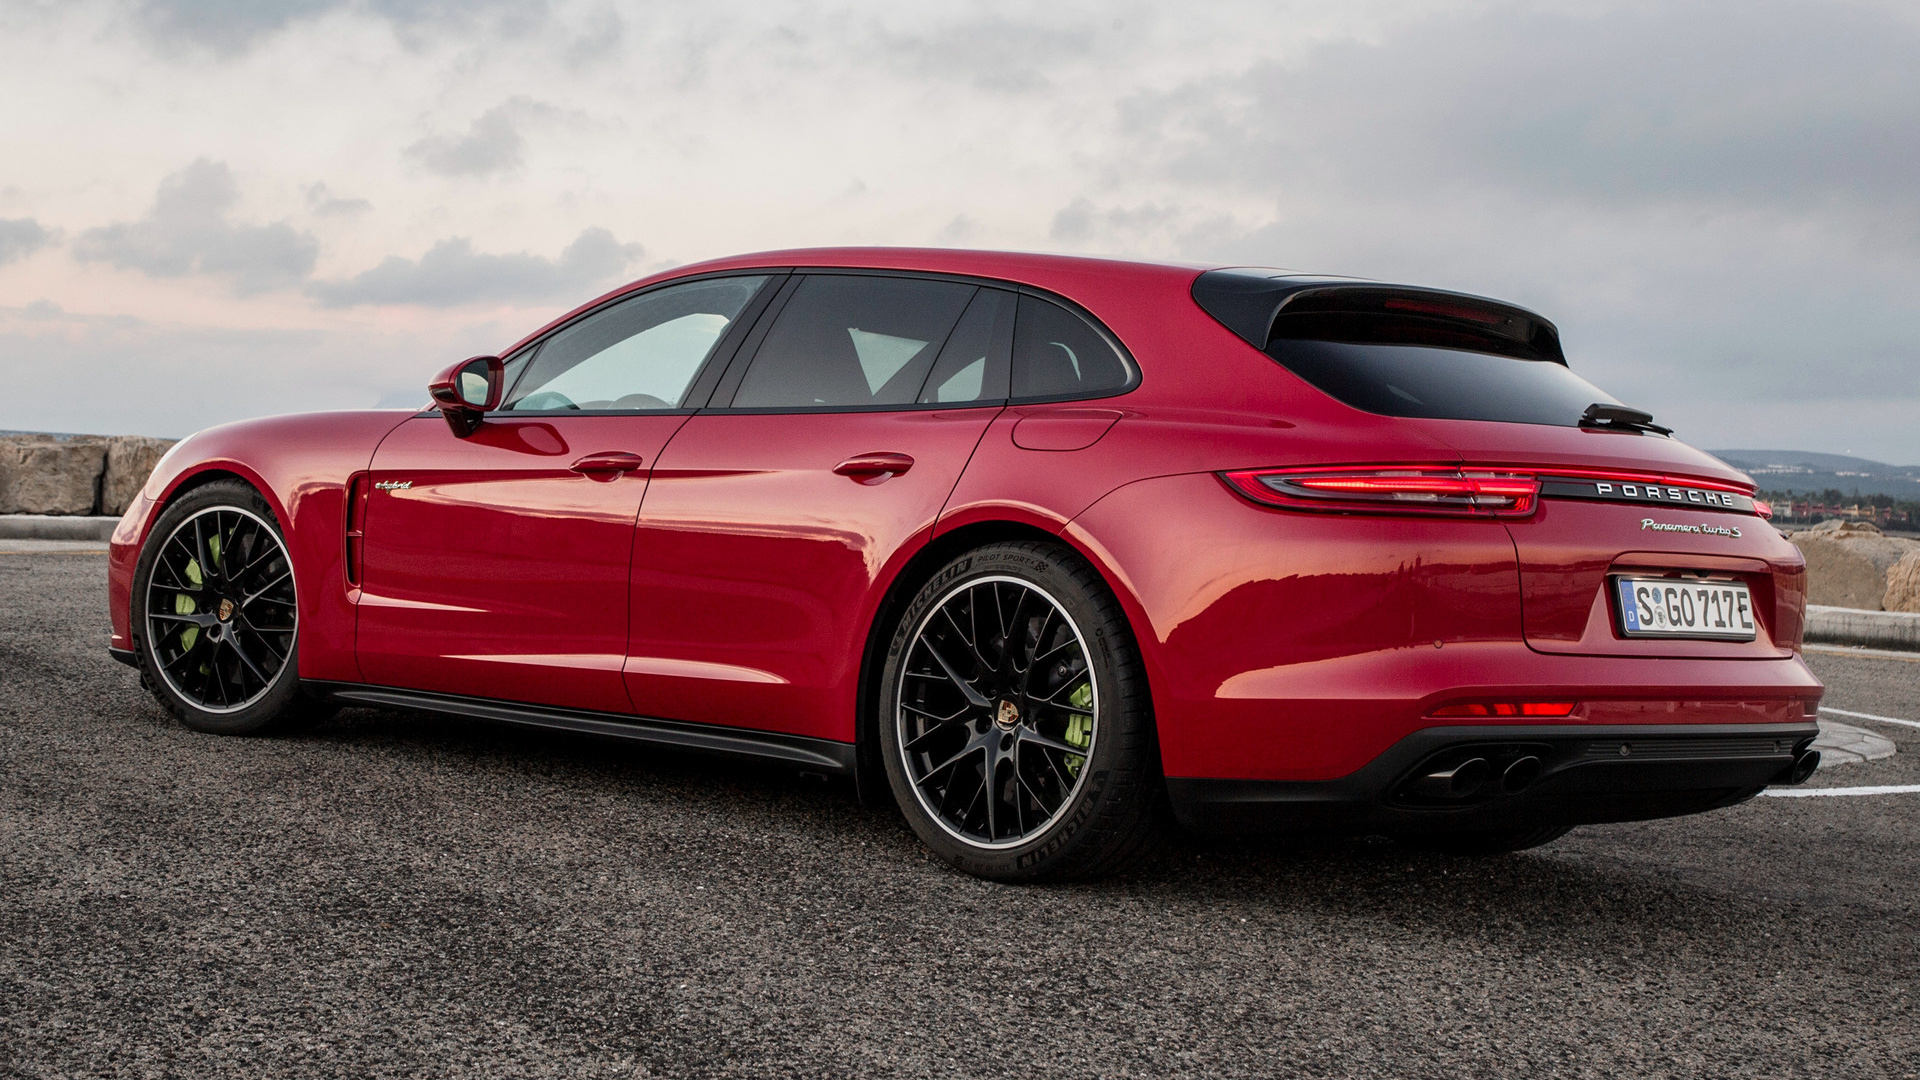 2017 porsche panamera turbo s e hybrid sport turismo wallpapers and hd images car pixel. Black Bedroom Furniture Sets. Home Design Ideas